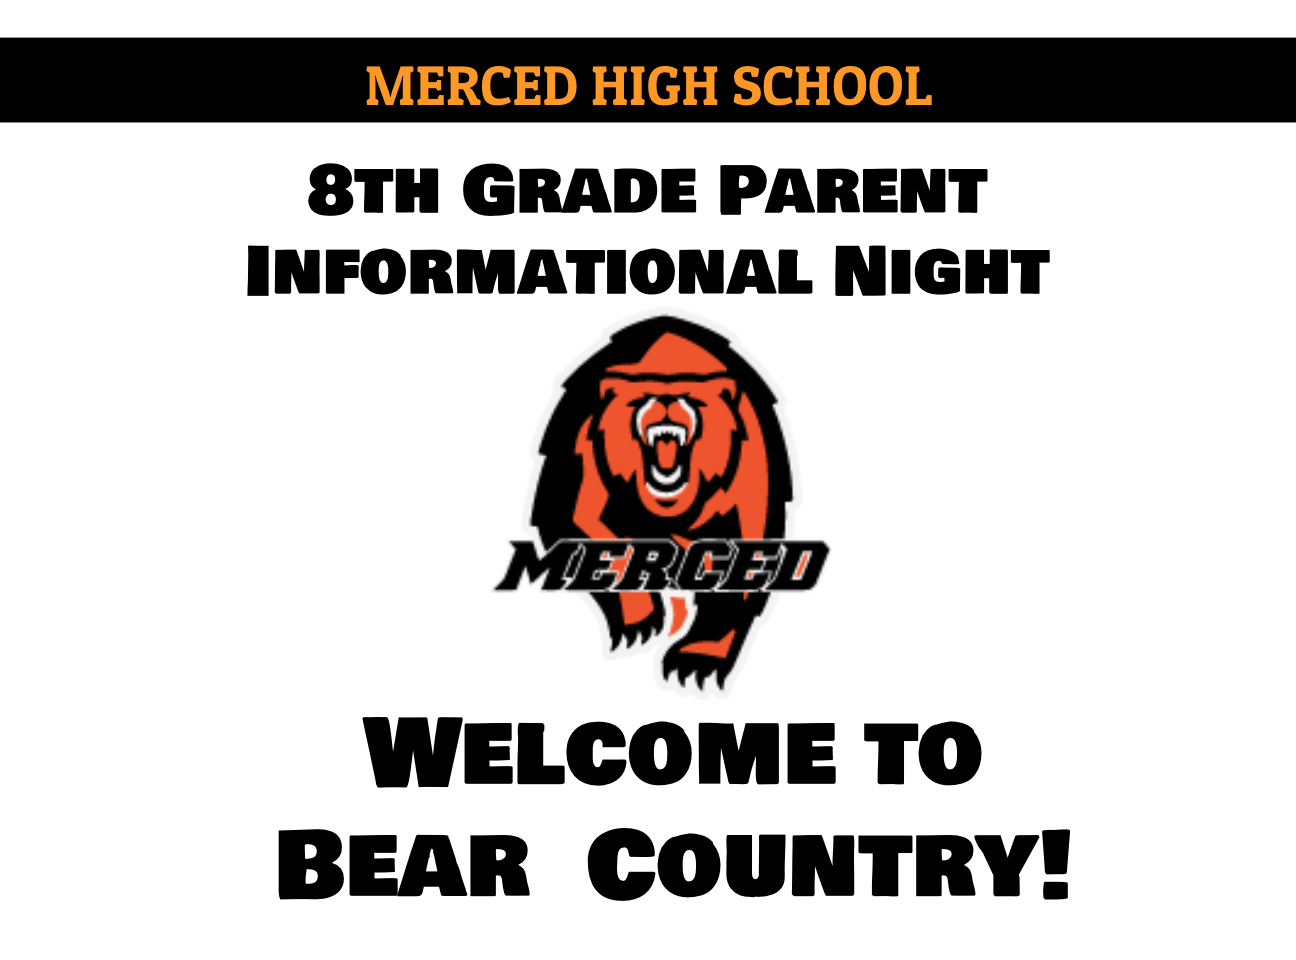 8th Grade Parent Informational Night